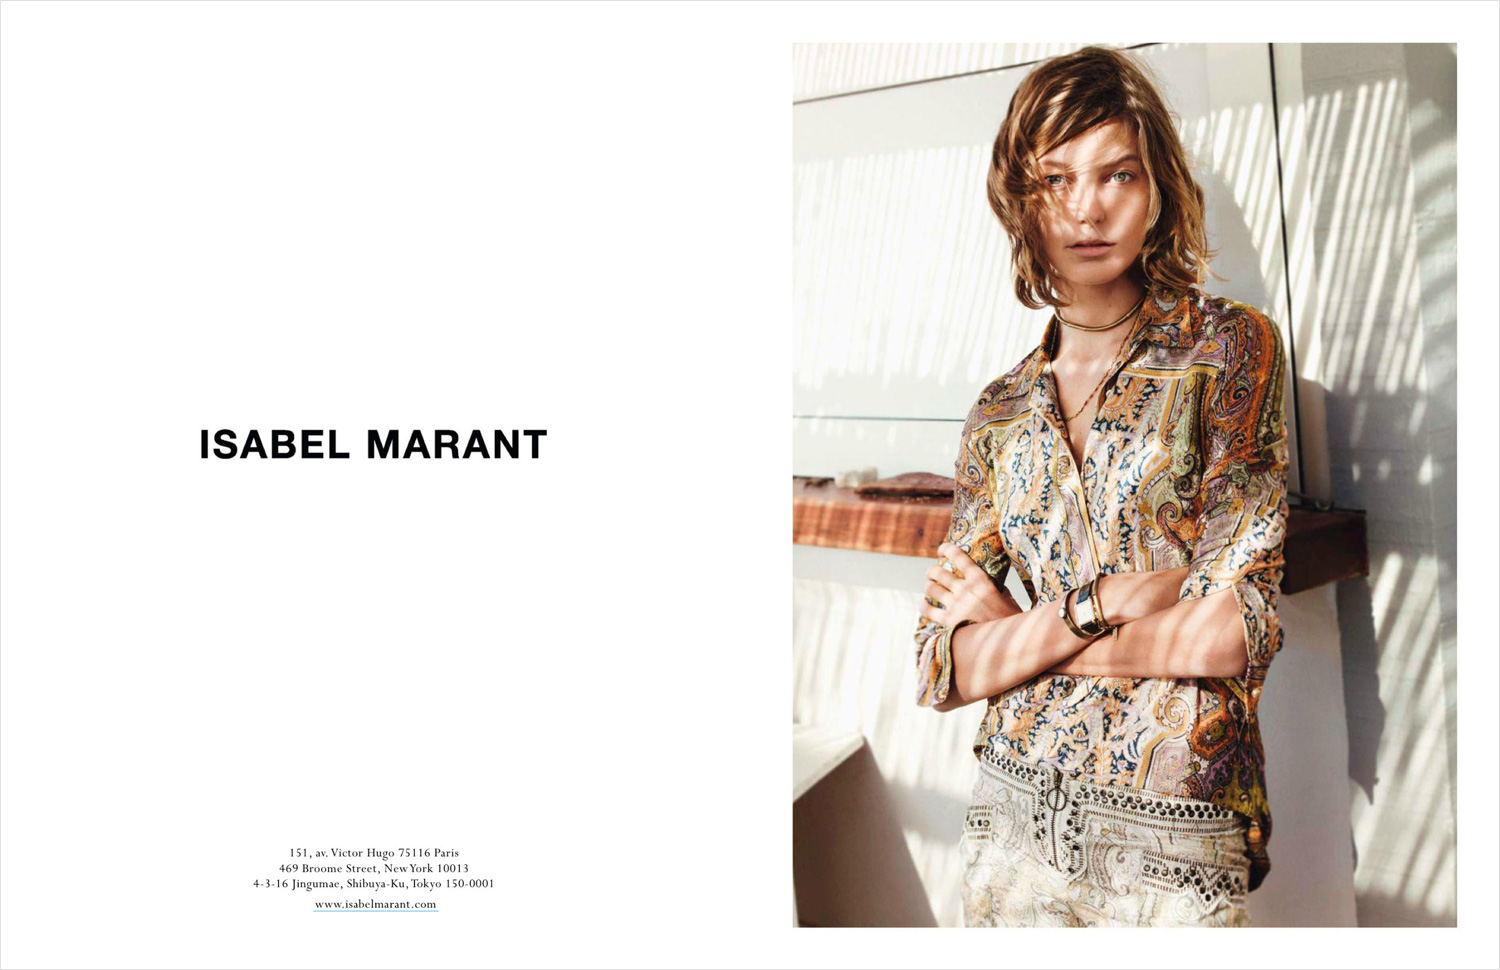 Isabel Marant Model Approved Daria Werbowy The Face Of Celine And